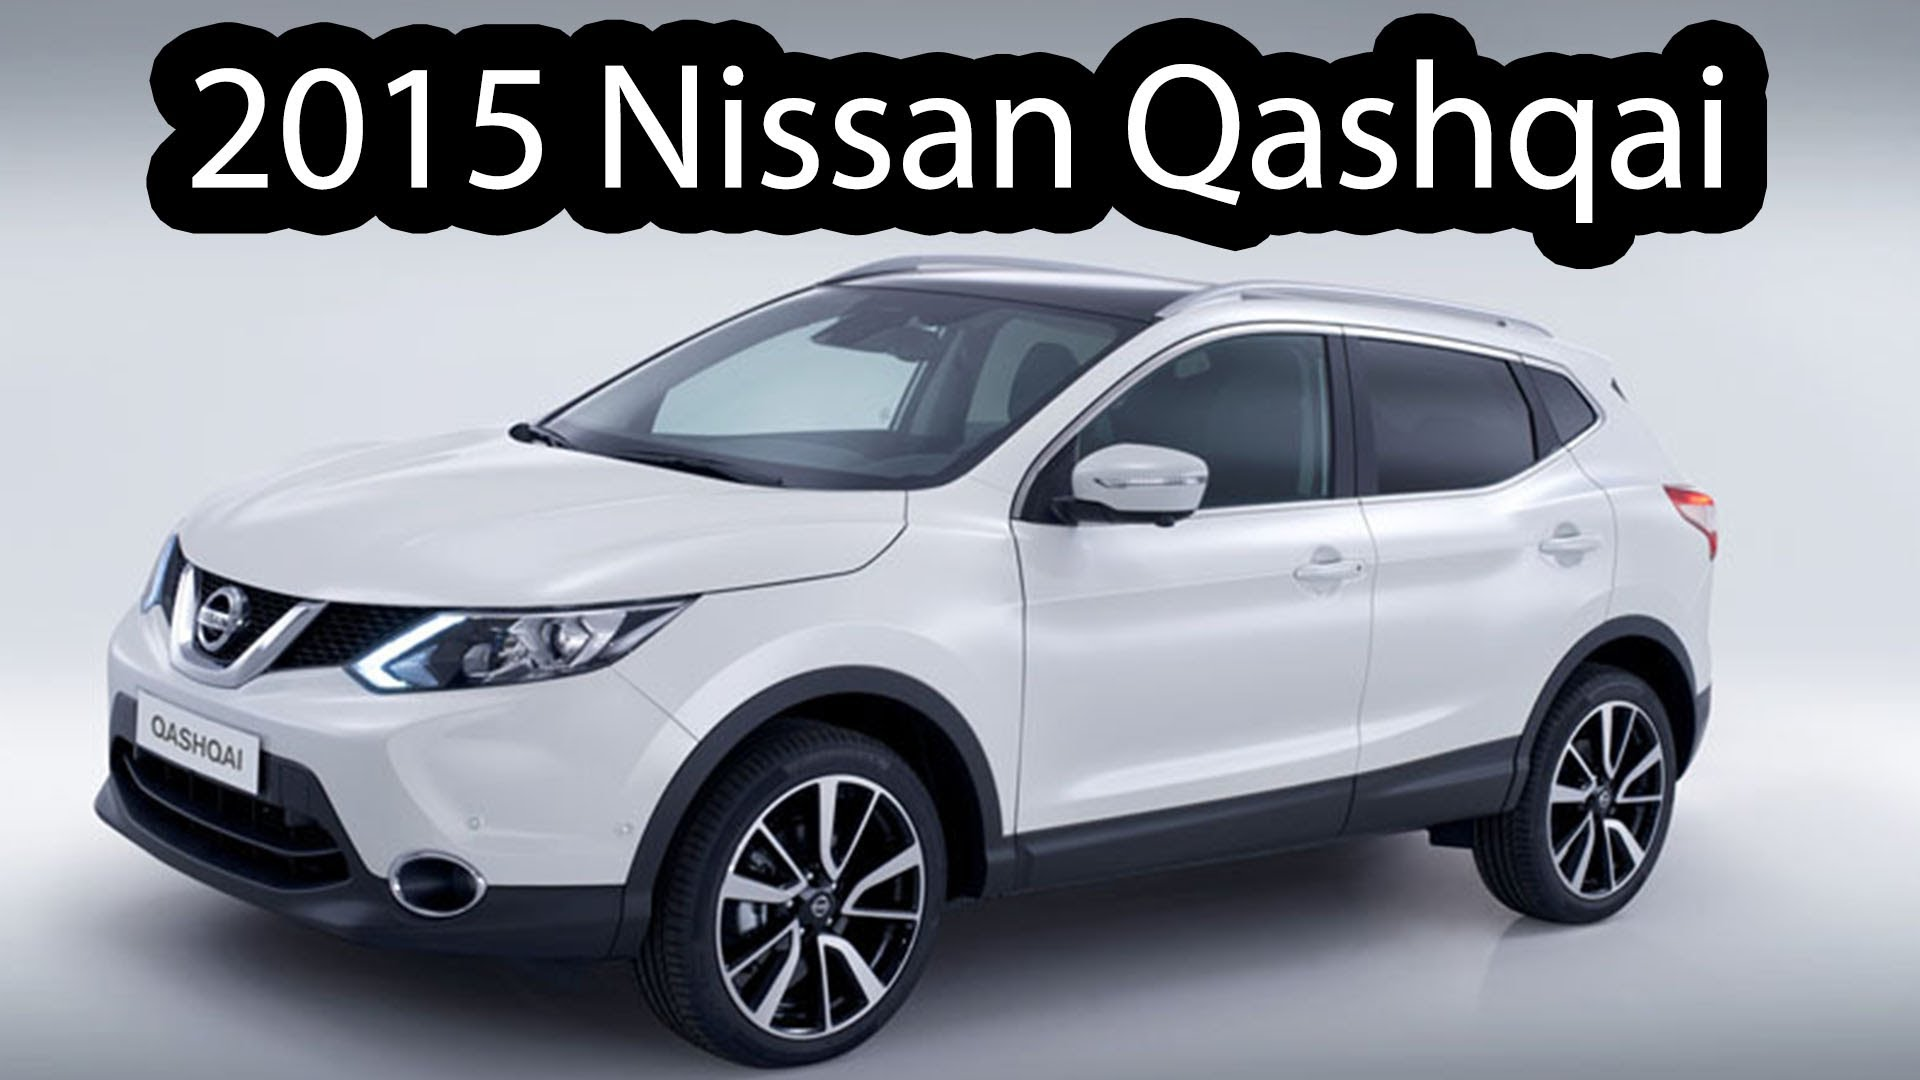 2015 Nissan Qashqai ii – pictures information and specs Auto